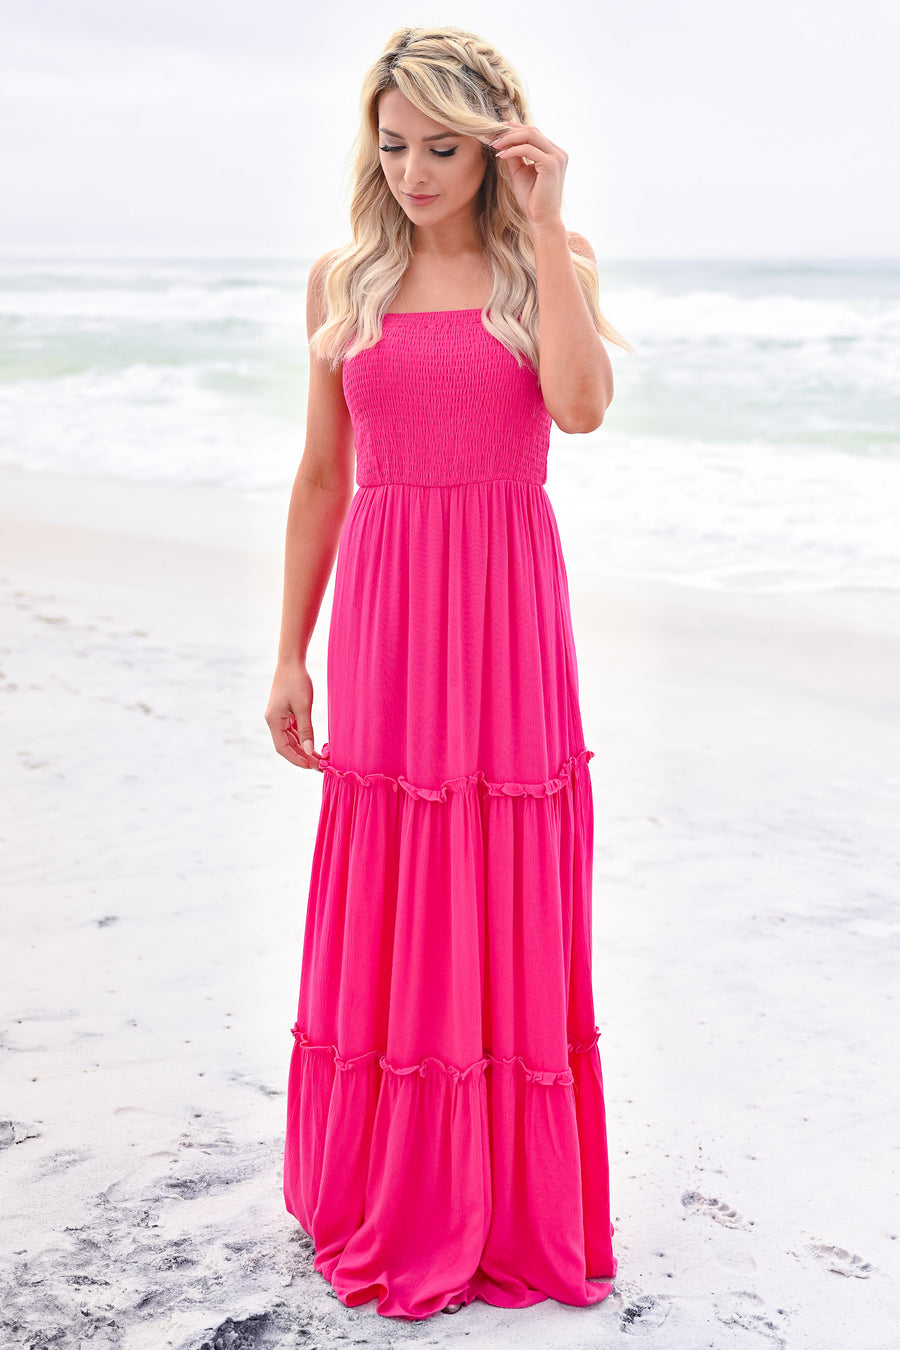 The Way You Love Me Maxi - Fuchsia womens trendy tiered adjustable strap maxi dress closet candy back